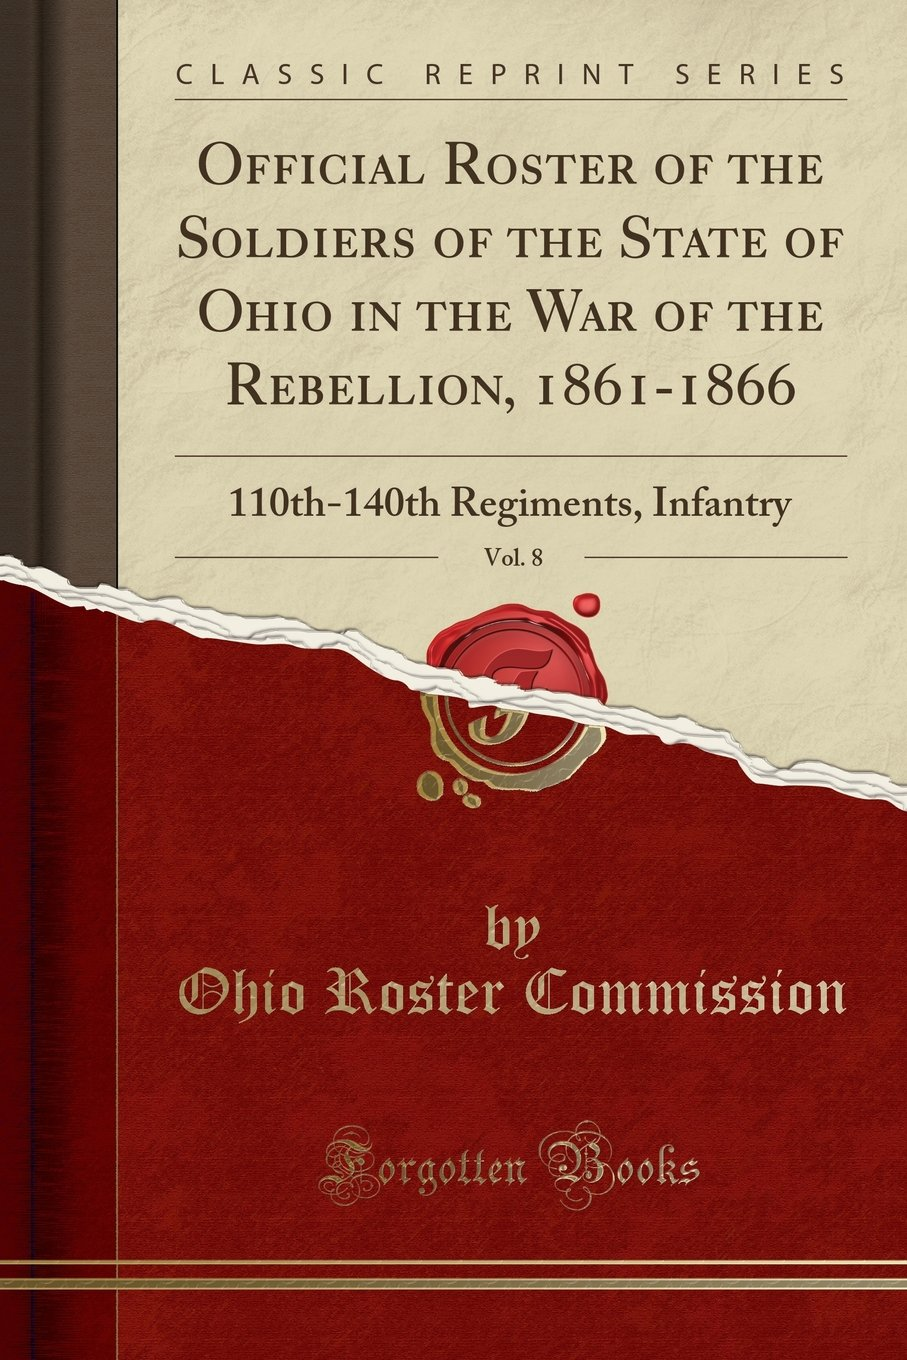 Download Official Roster of the Soldiers of the State of Ohio in the War of the Rebellion, 1861-1866, Vol. 8: 110th-140th Regiments, Infantry (Classic Reprint) PDF